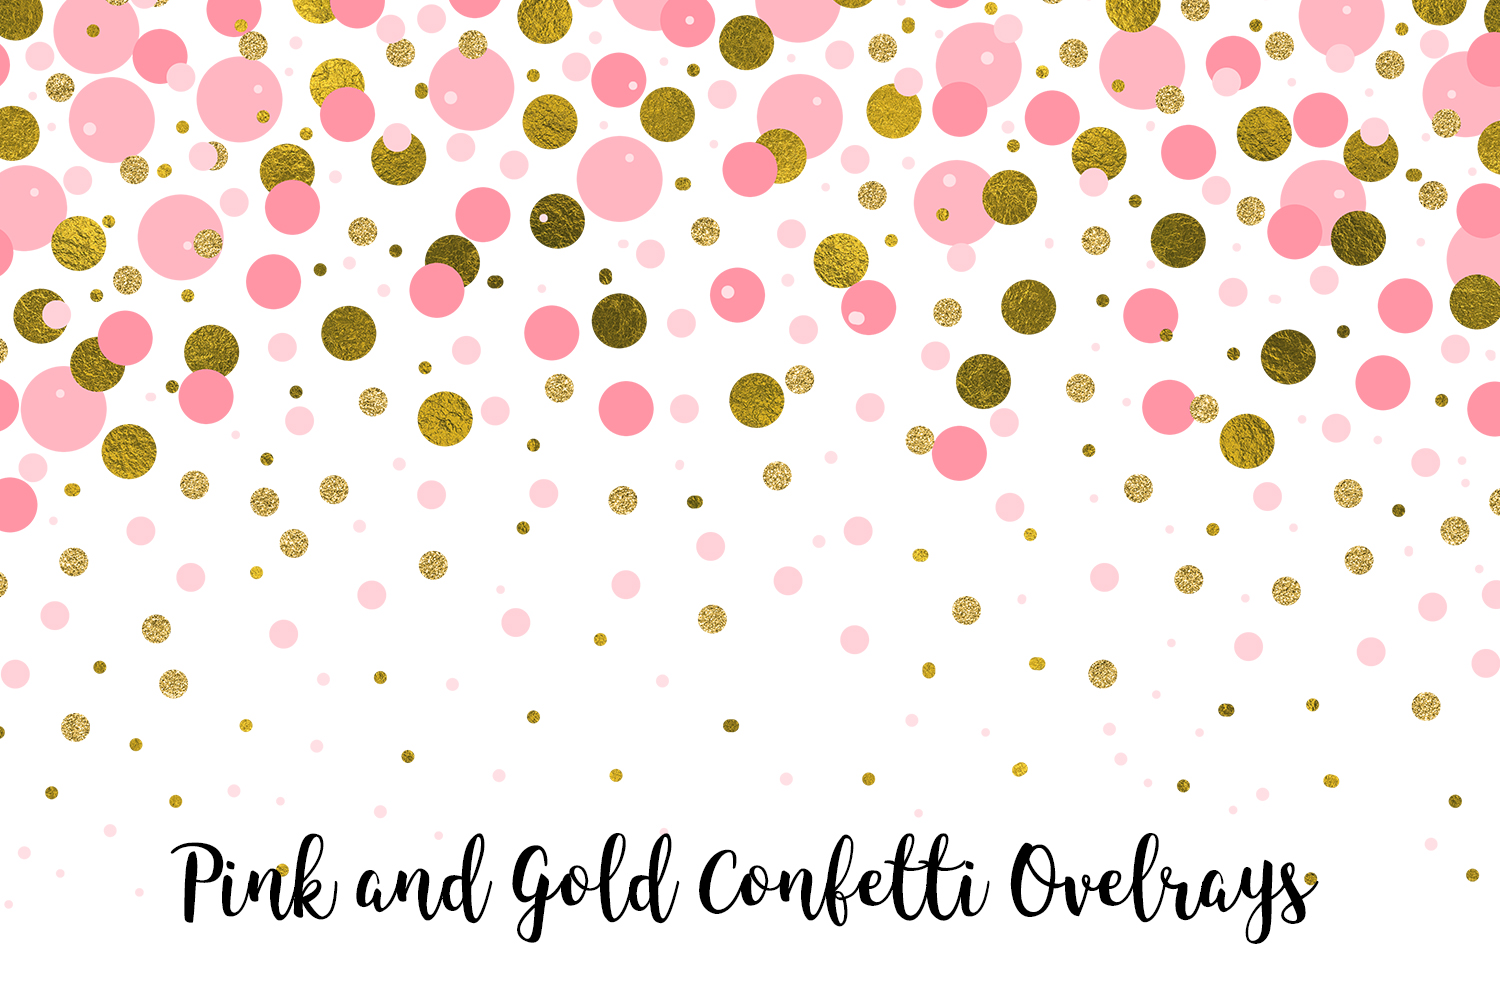 Pink and Gold Confetti Overlays, Transparent PNGs example image 1